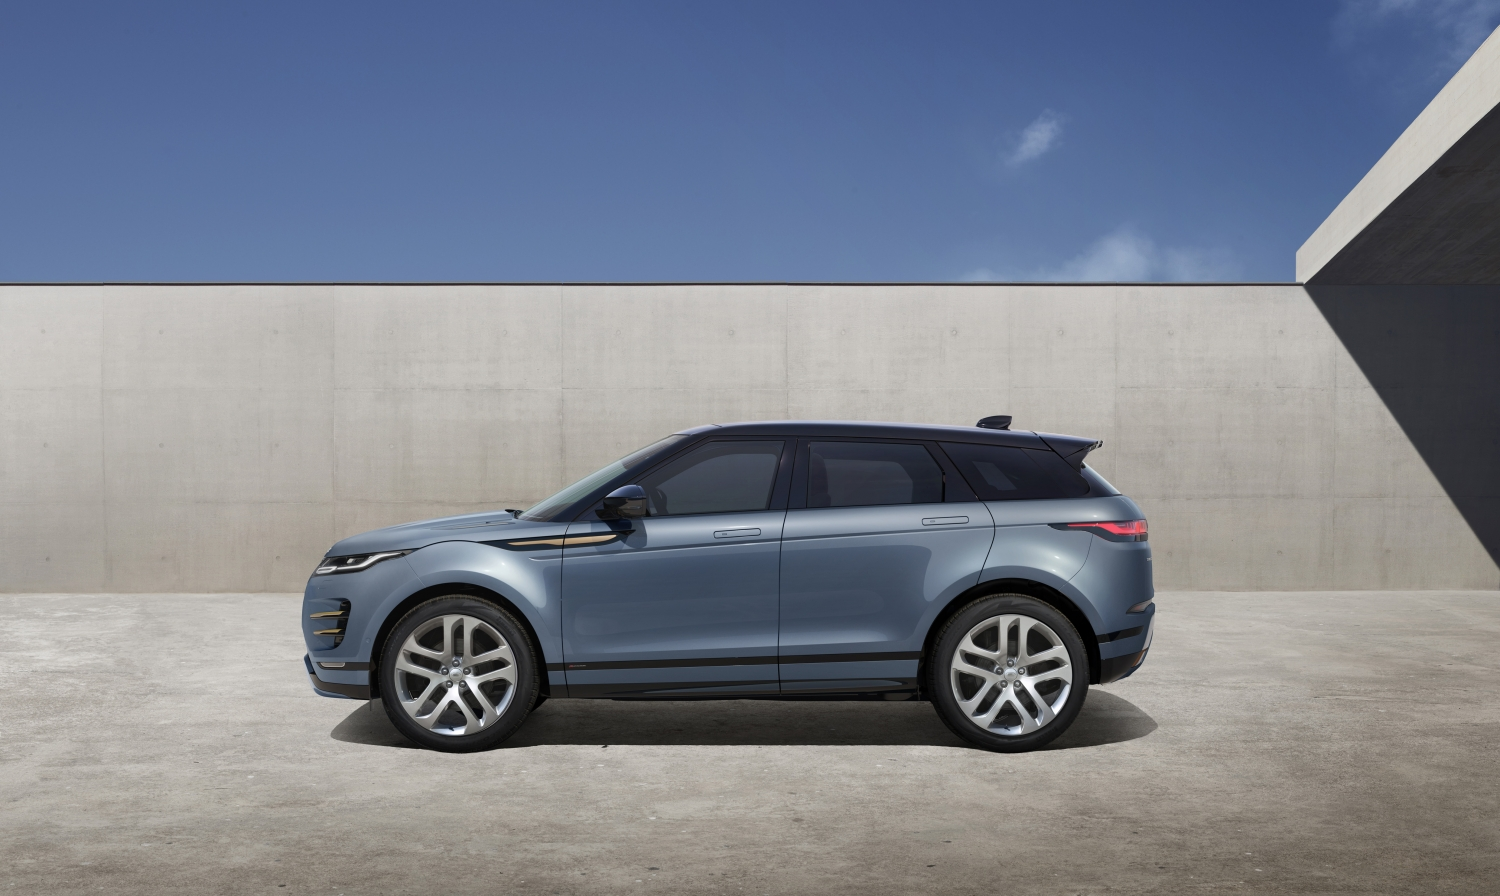 Studio – New Range Rover Evoque